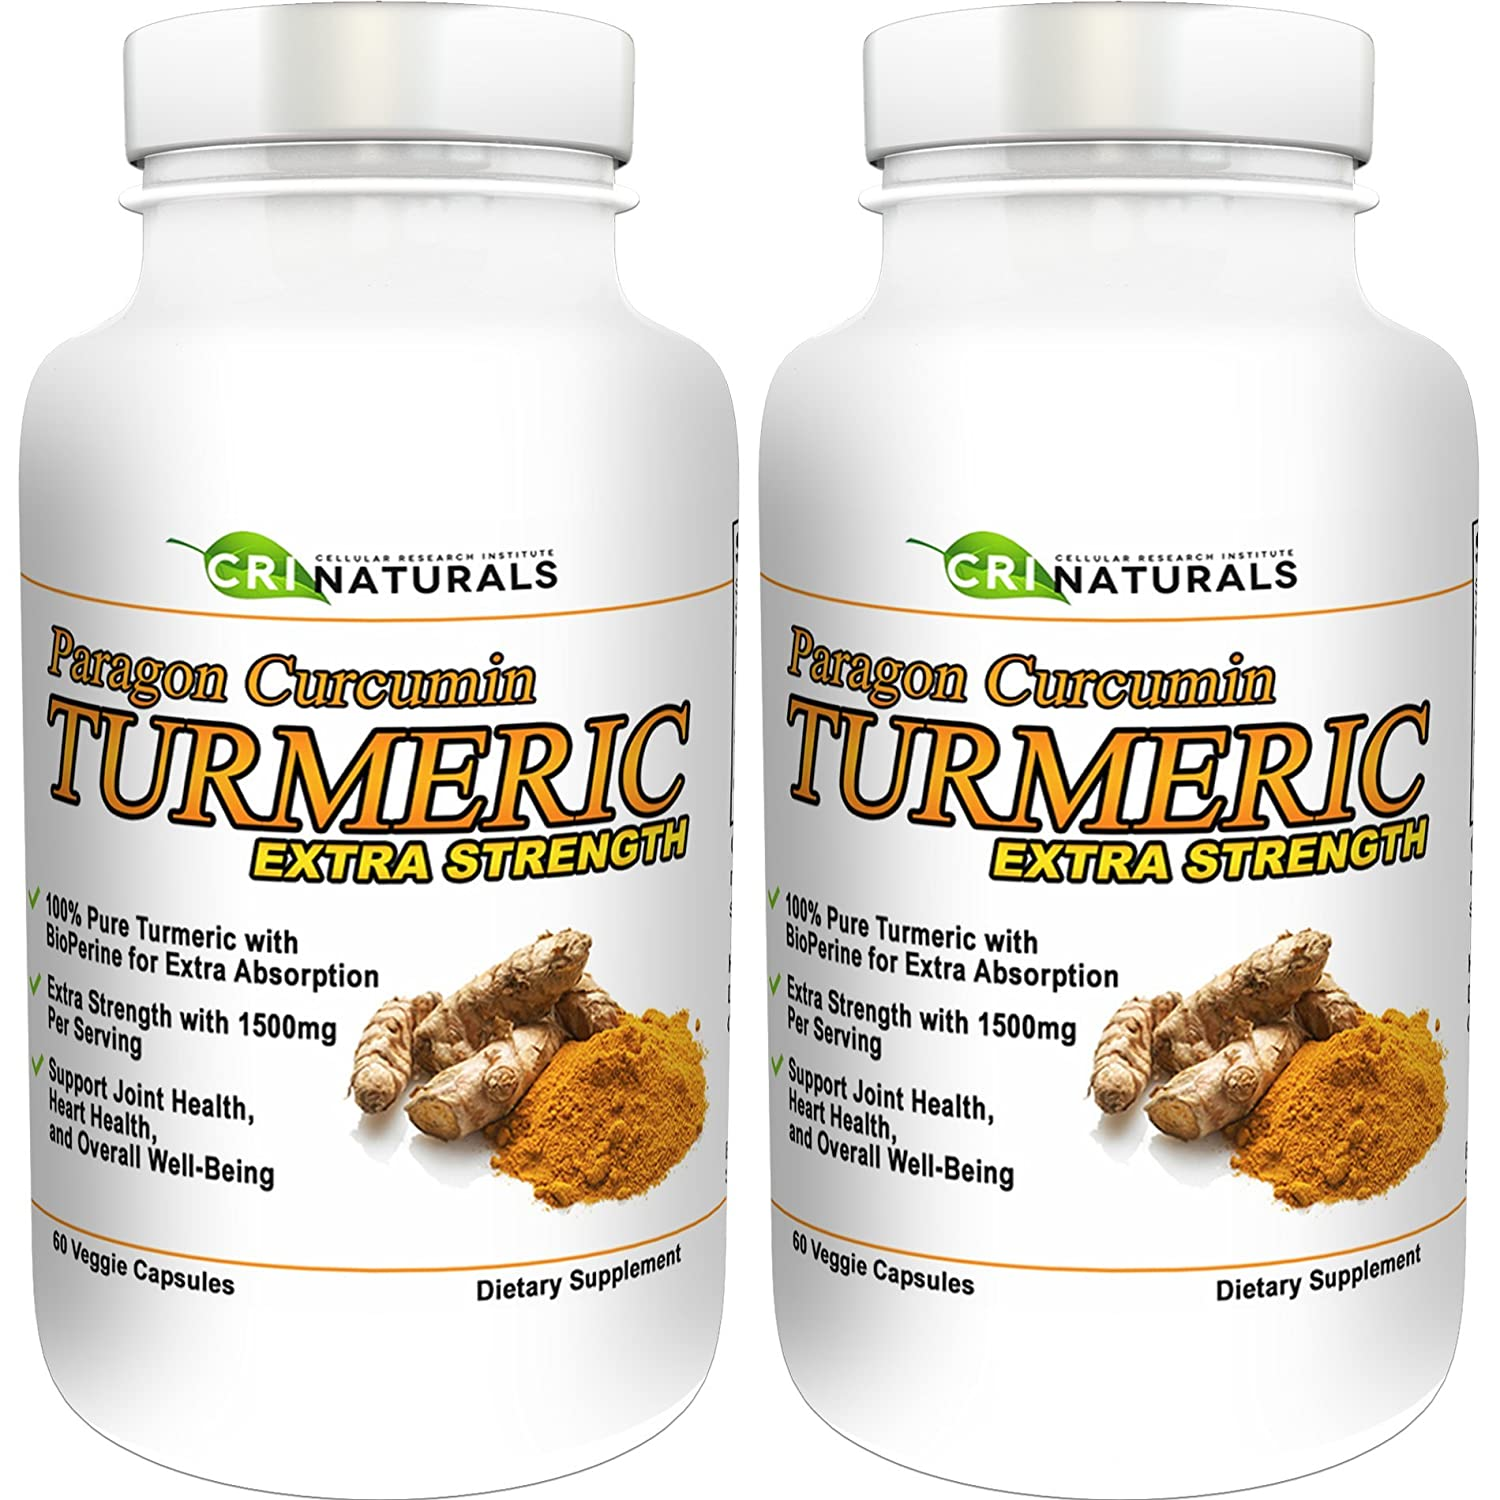 Paragon Curcumin Turmeric-1500mg Extra Strength- Anti-Inflammation – Supports Joint Health – Heart Health – Muscle Pain Relief – 90-Day Satisfaction Guarantee 2-Pack